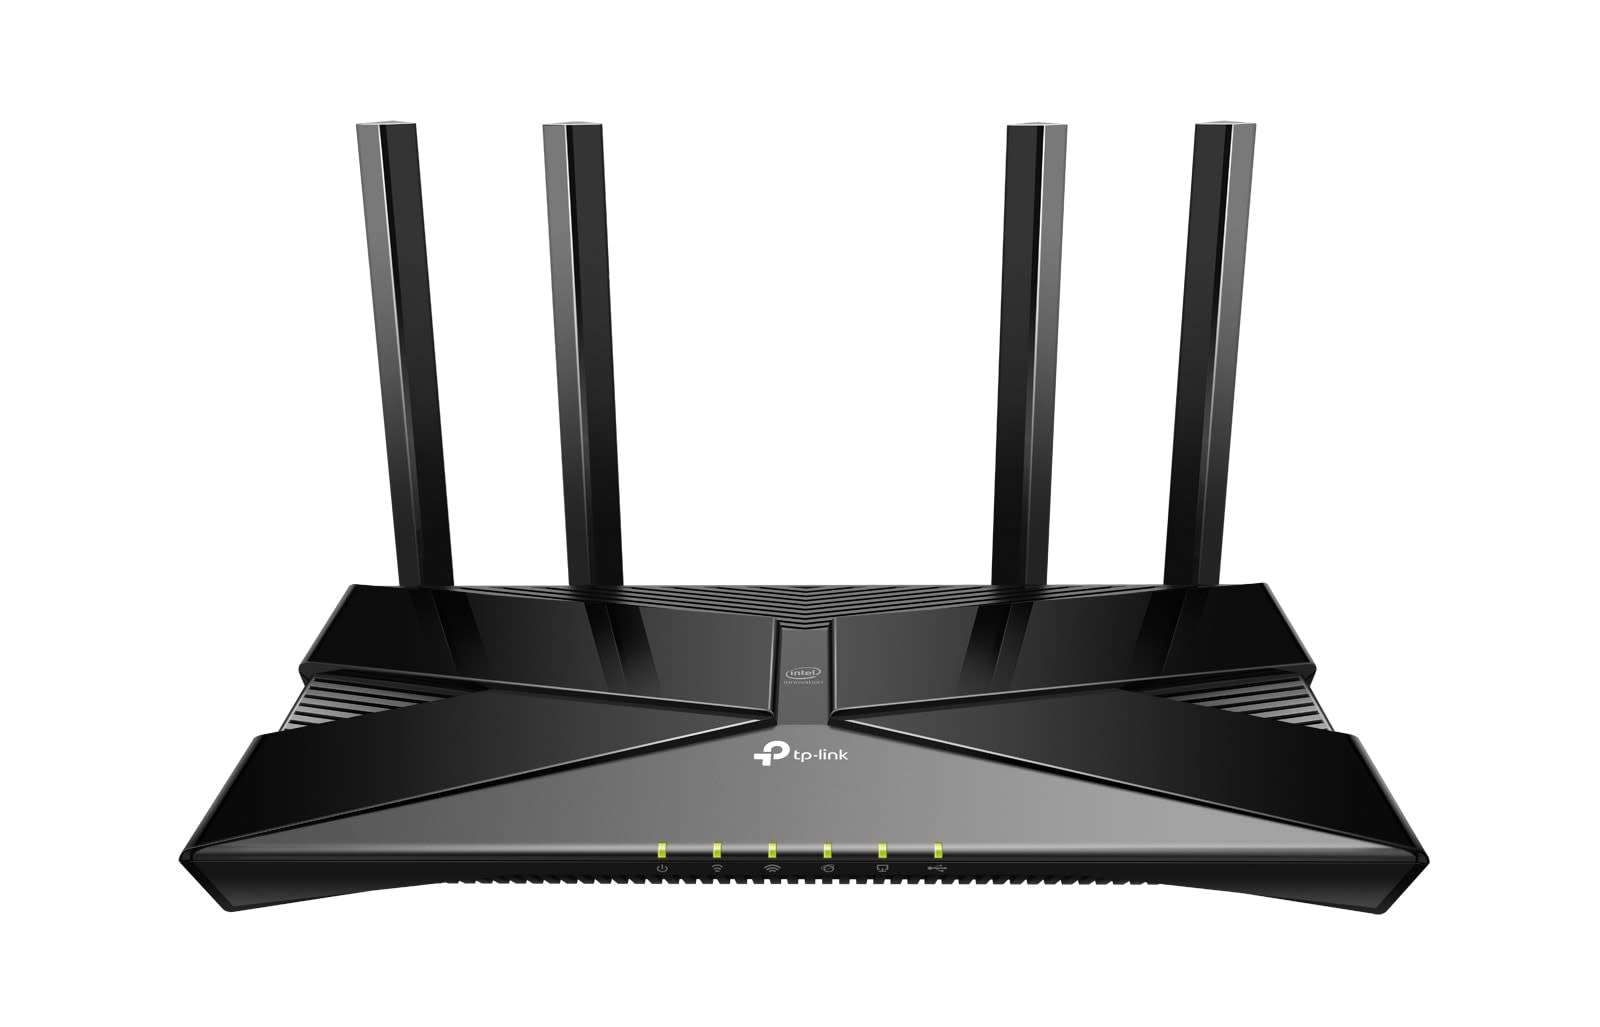 TP-Link Archer AX3000 WiFi 6 router